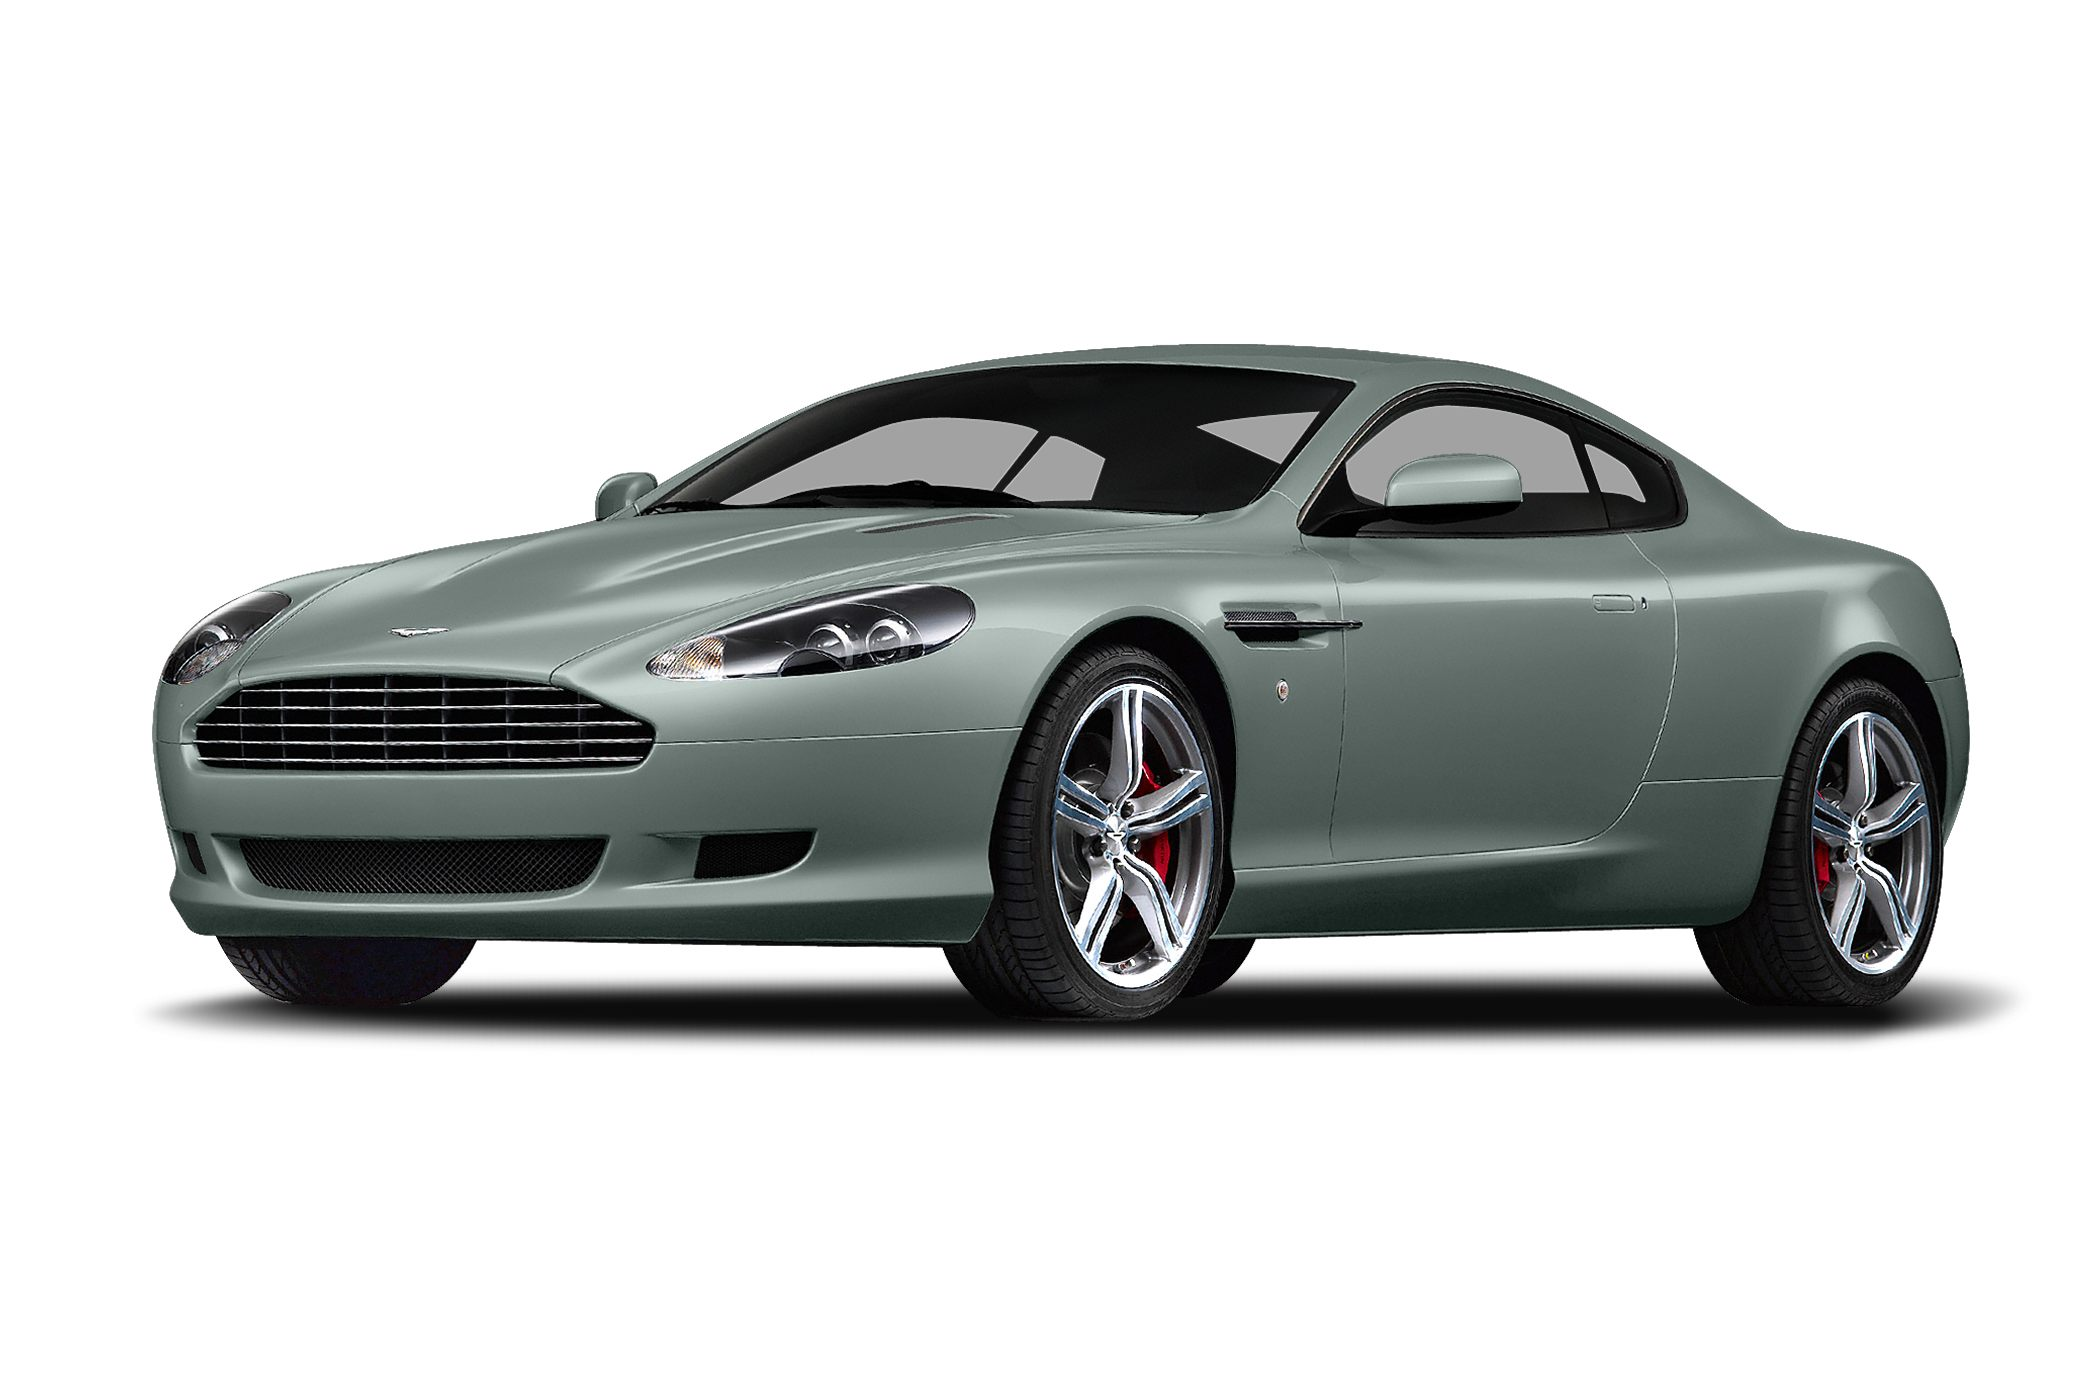 2010 Aston Martin DB9